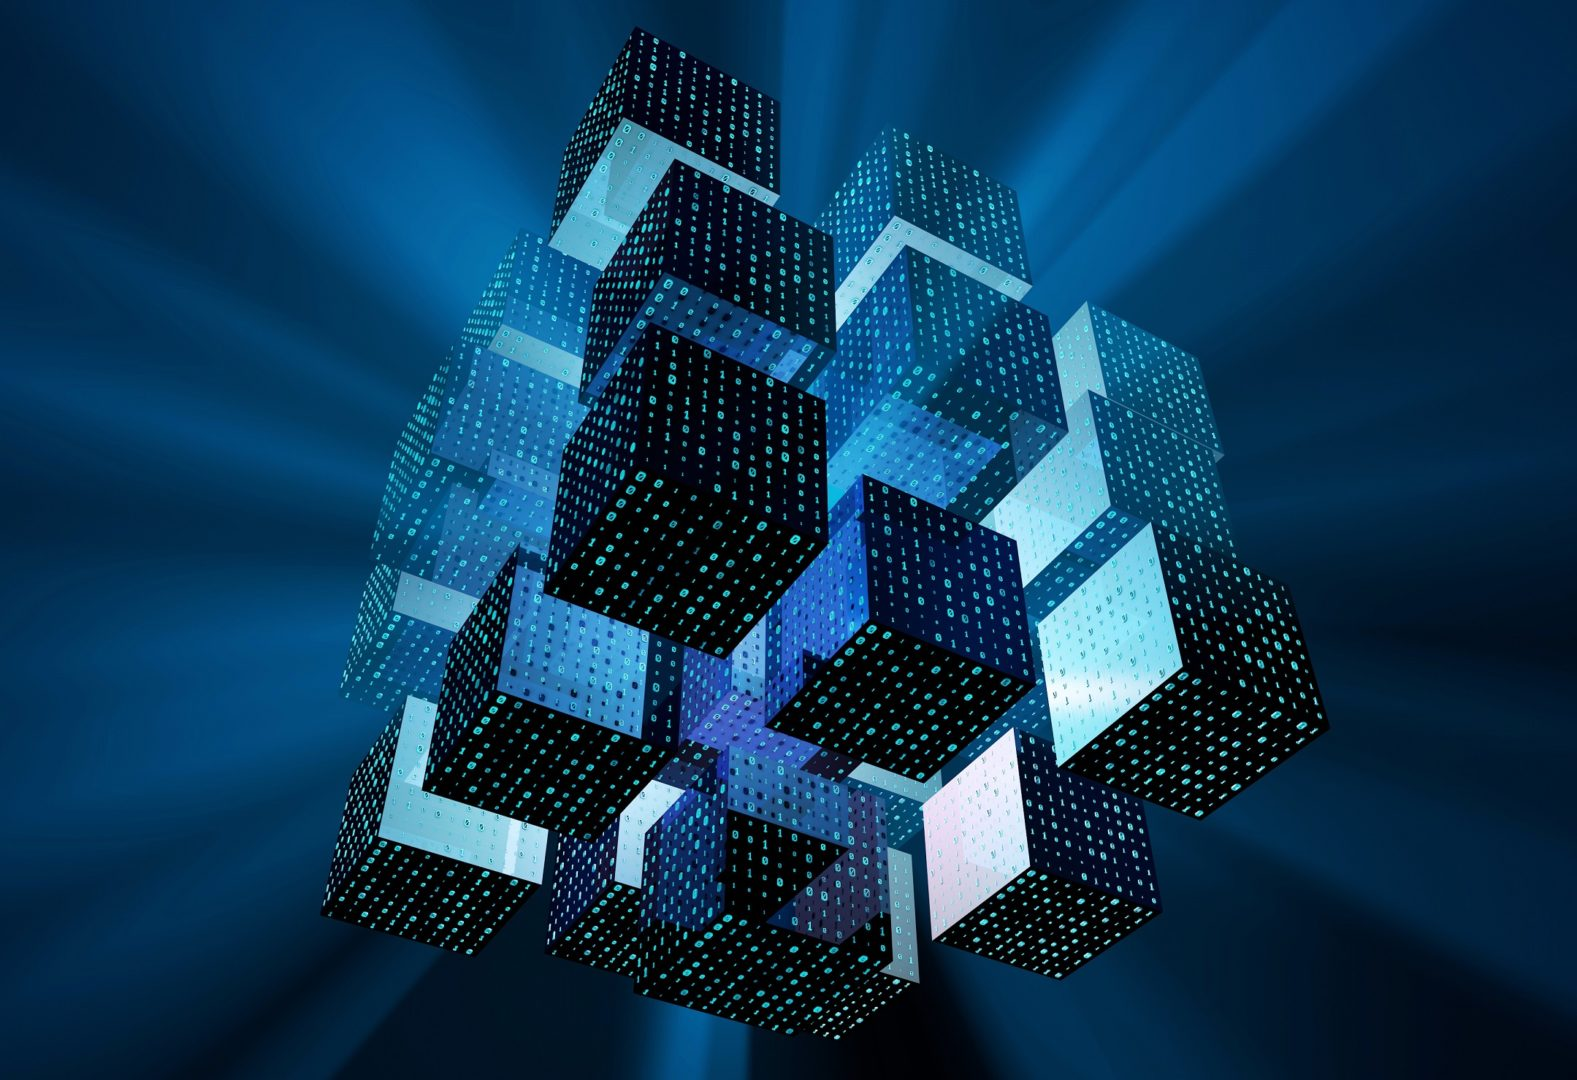 Cubes with binary ones and zeroes on them clustered together floating in blue space with light shining out